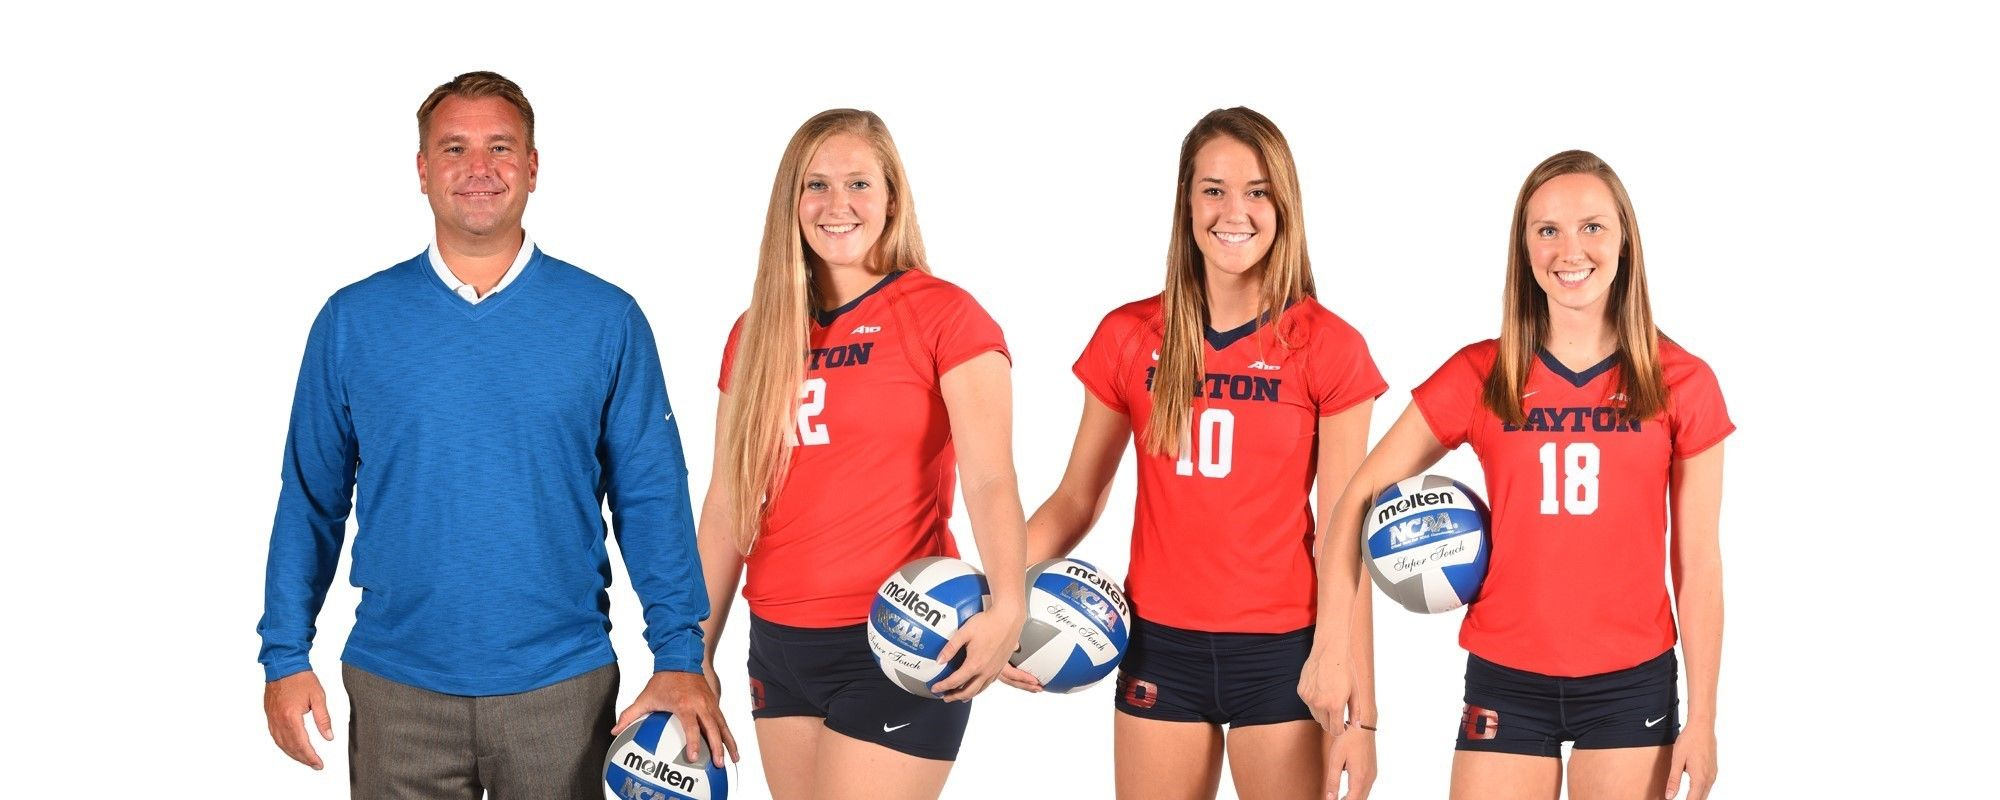 Udvb Takes Four Year End Awards Volleyball News University Of Dayton Athlete